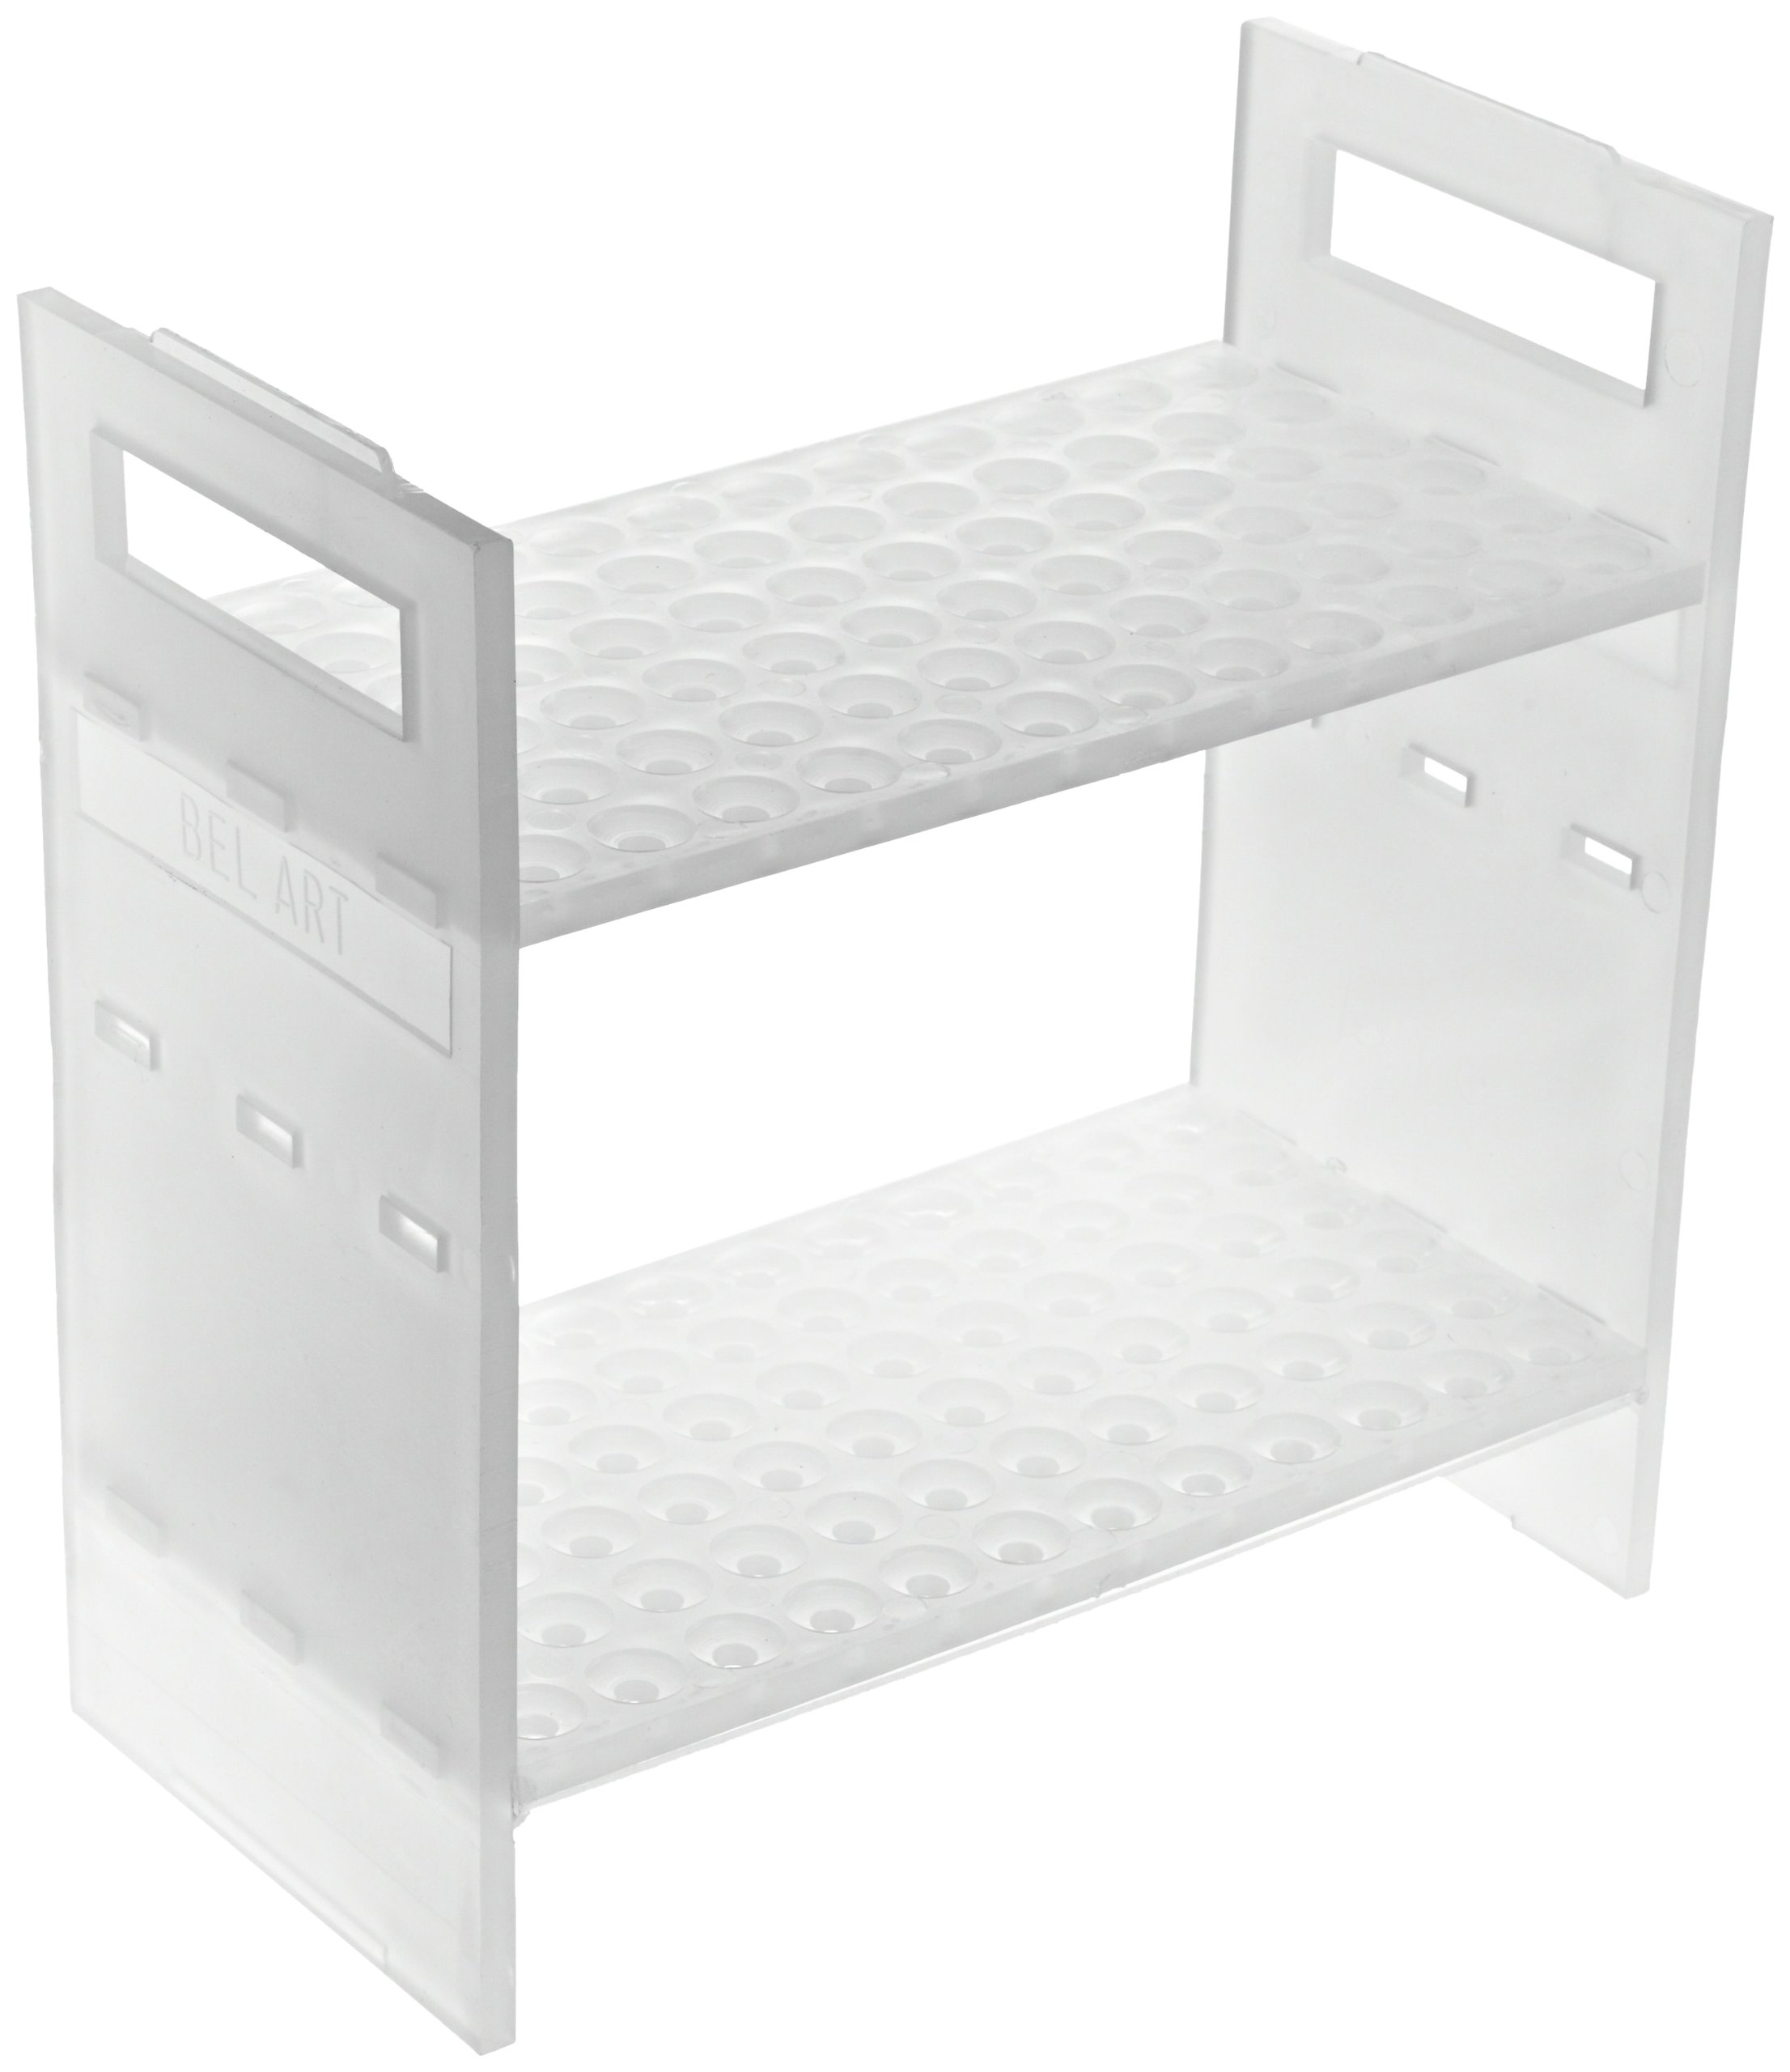 Bel-Art F18854-0005 NMR Sample Tube Rack; 5mm, 72 Places, 8⅜ x 4½ x 8¾ in., Polypropylene by SP Scienceware